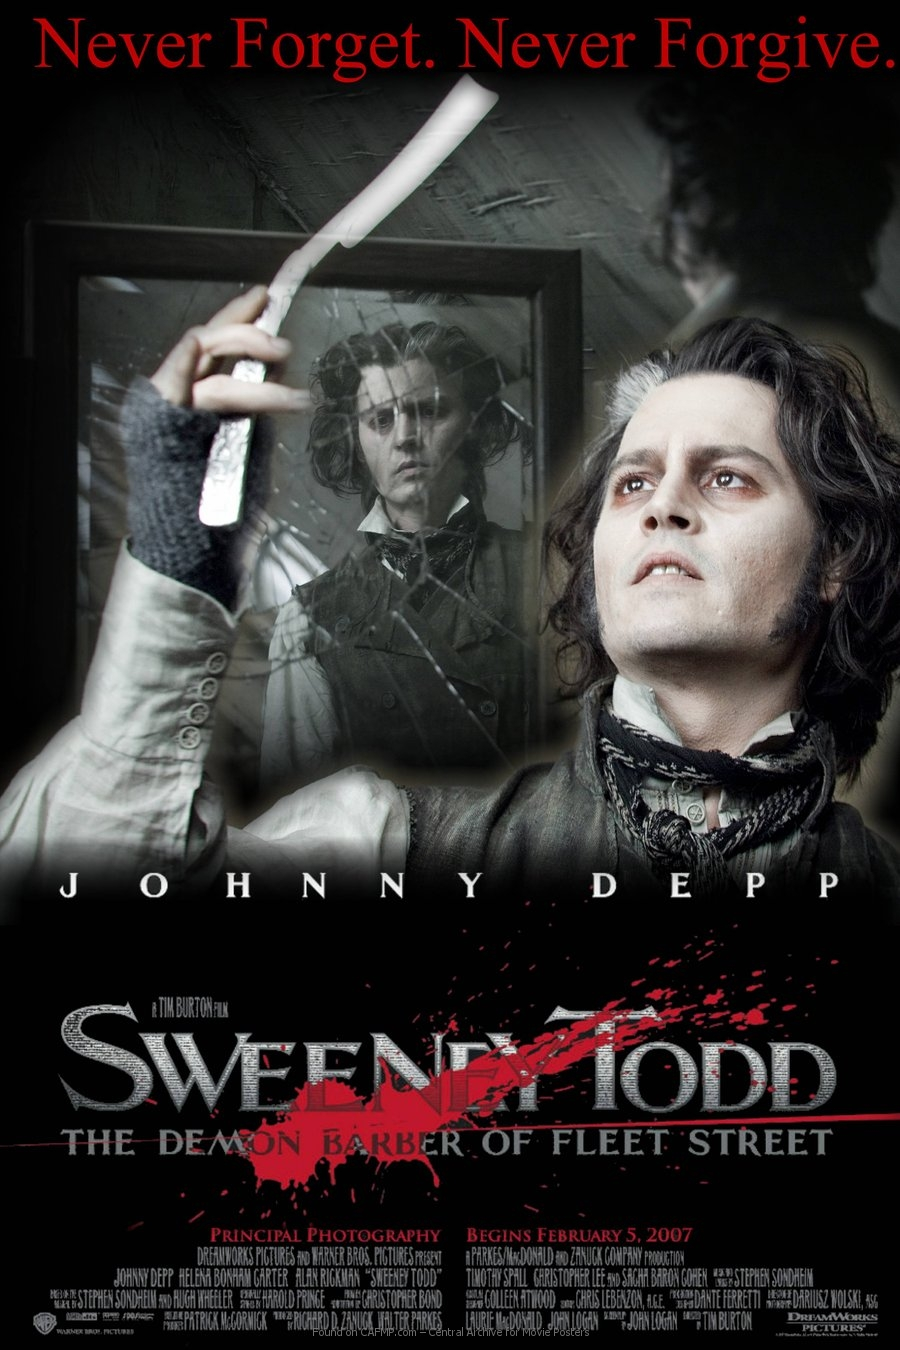 movie poster 187sweeney todd171 on cafmp